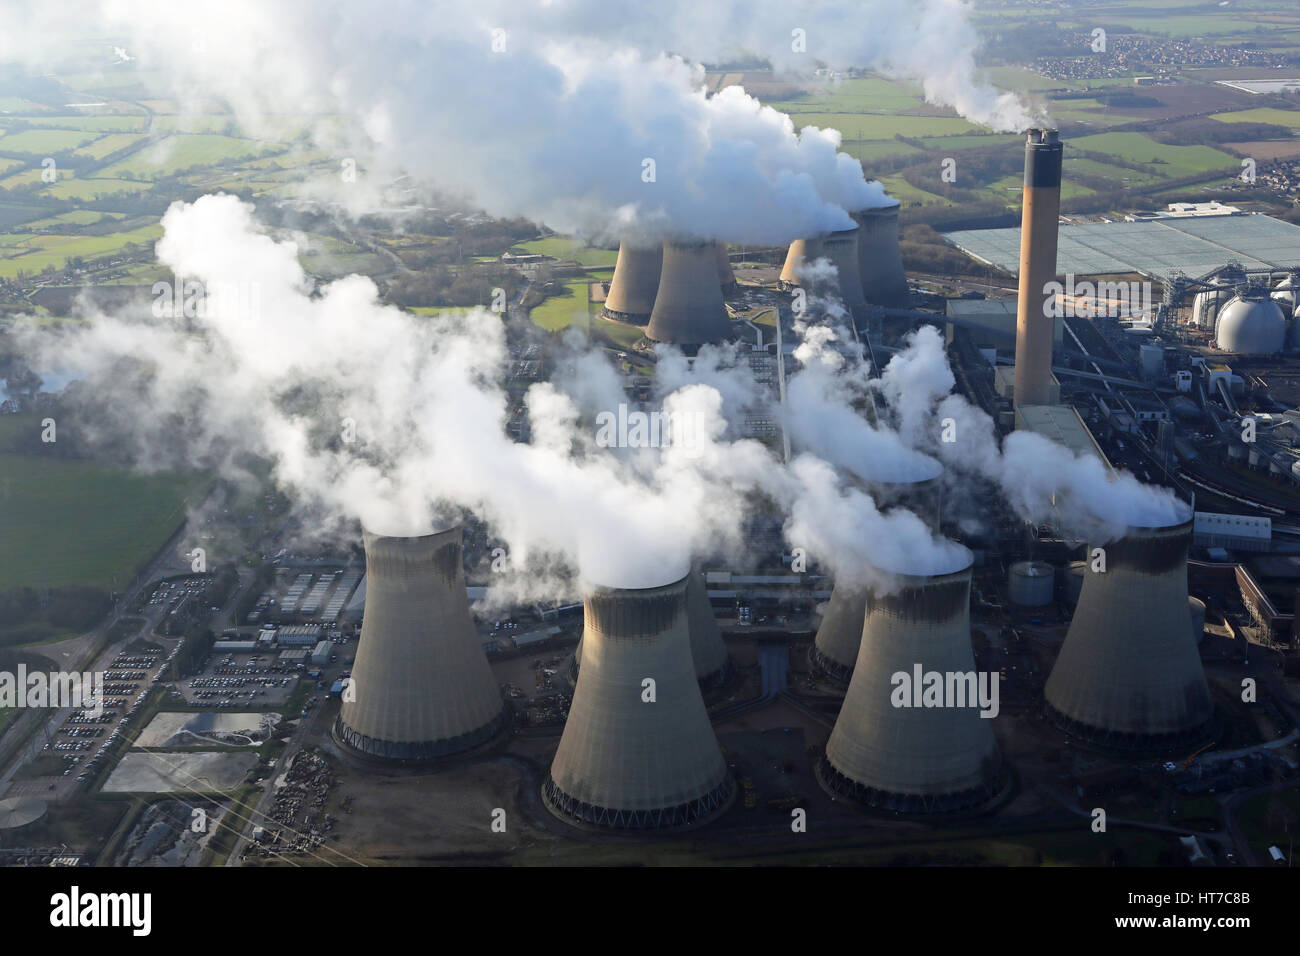 aerial view of Drax Power Station in Yorkshire, UK - Stock Image